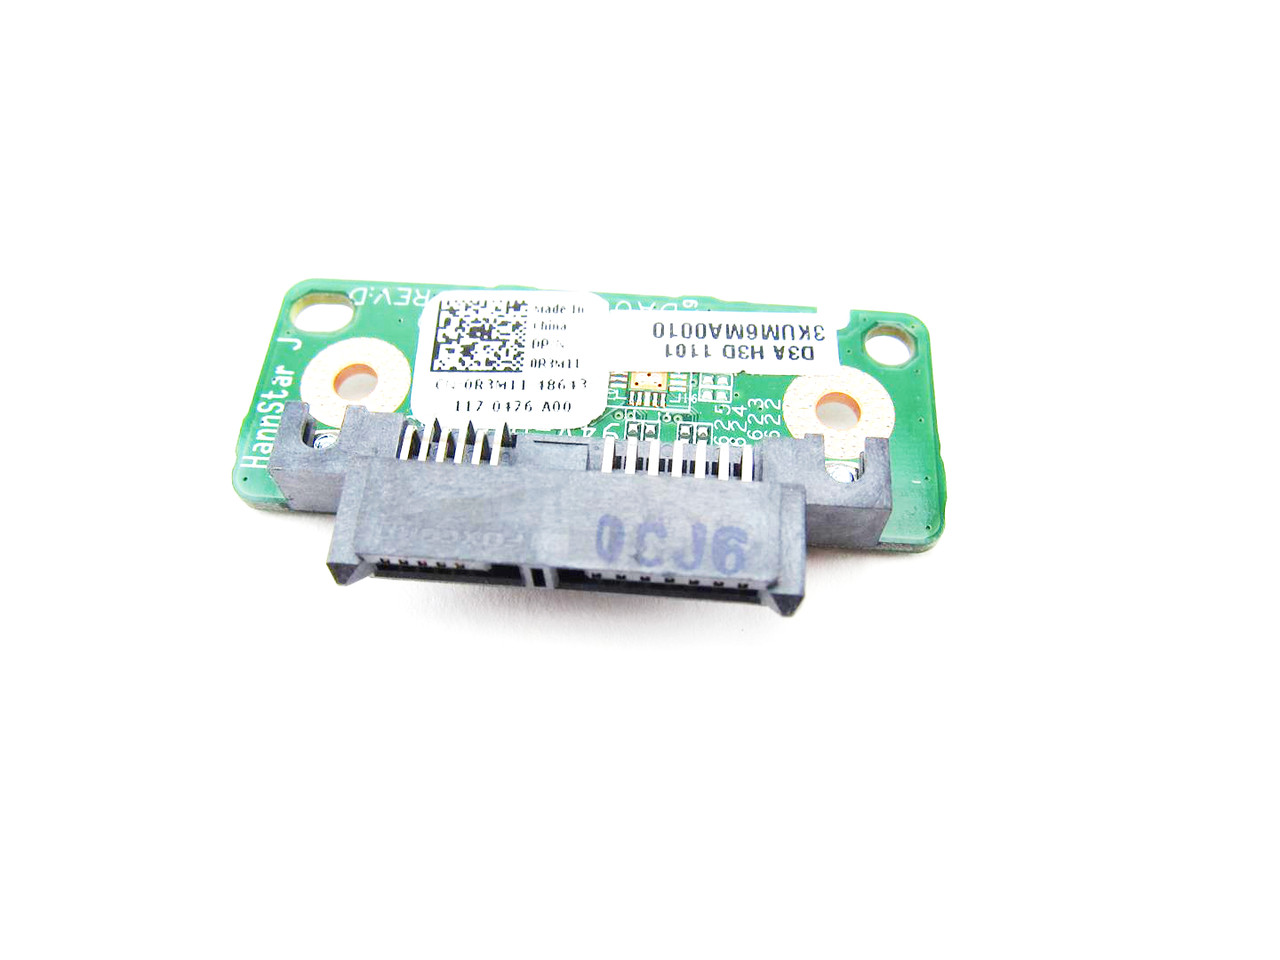 Dell Inspiron 1764 / 1564 Optical Drive Interposer Connector Board - R3M11